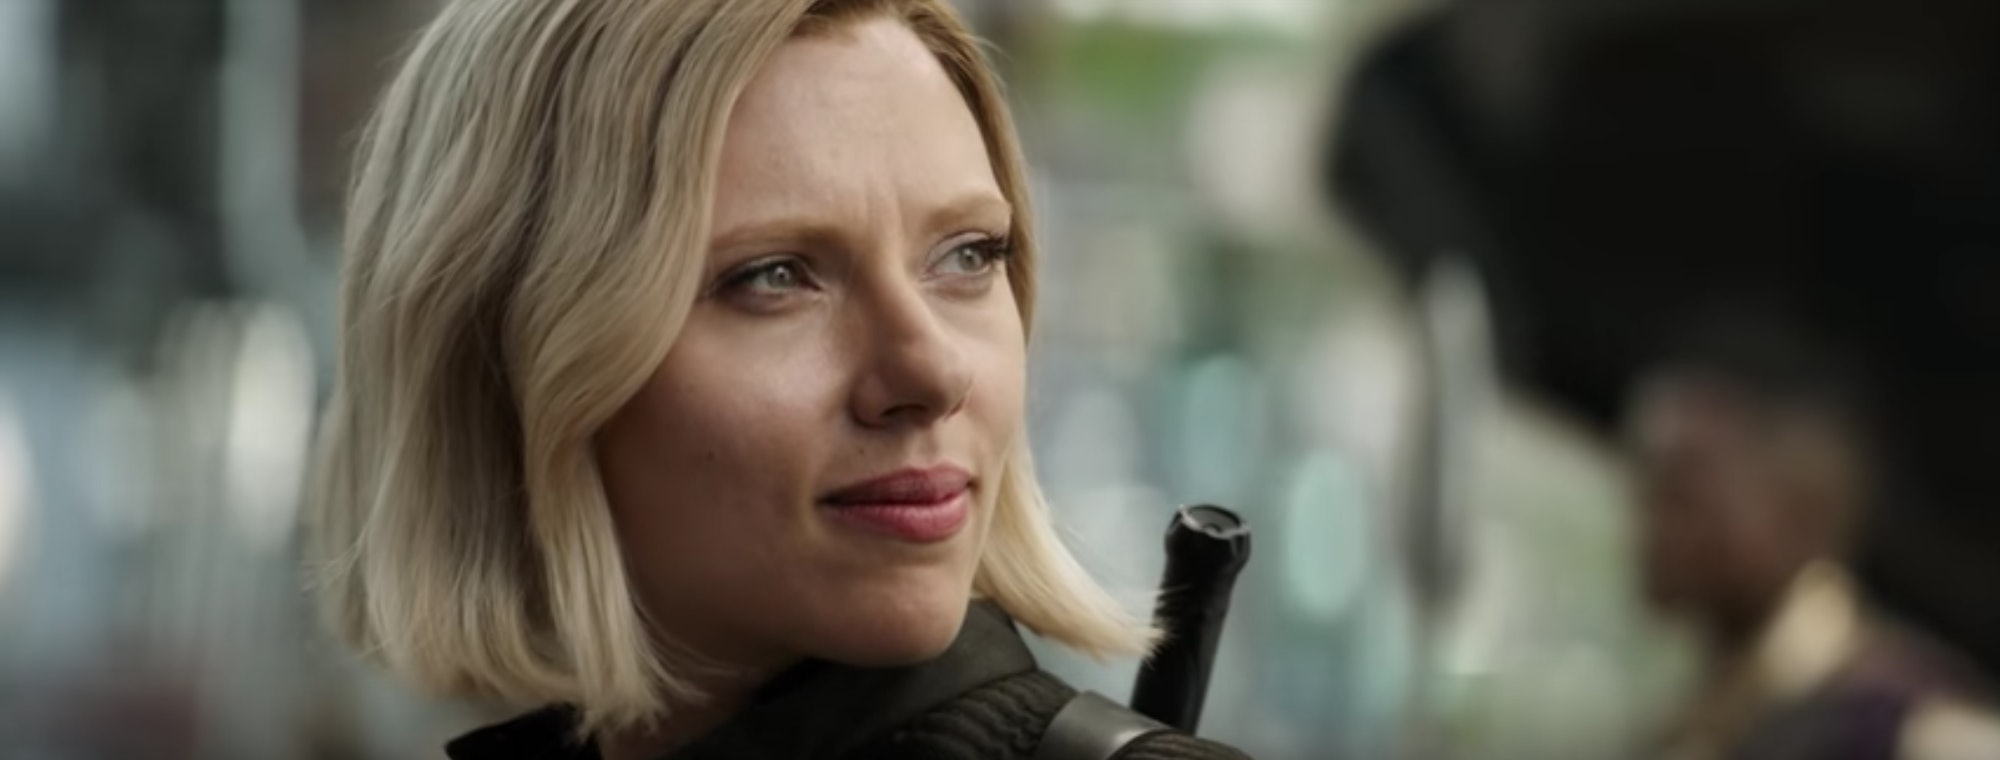 Black Widow smiles sadly at Bruce Banner.